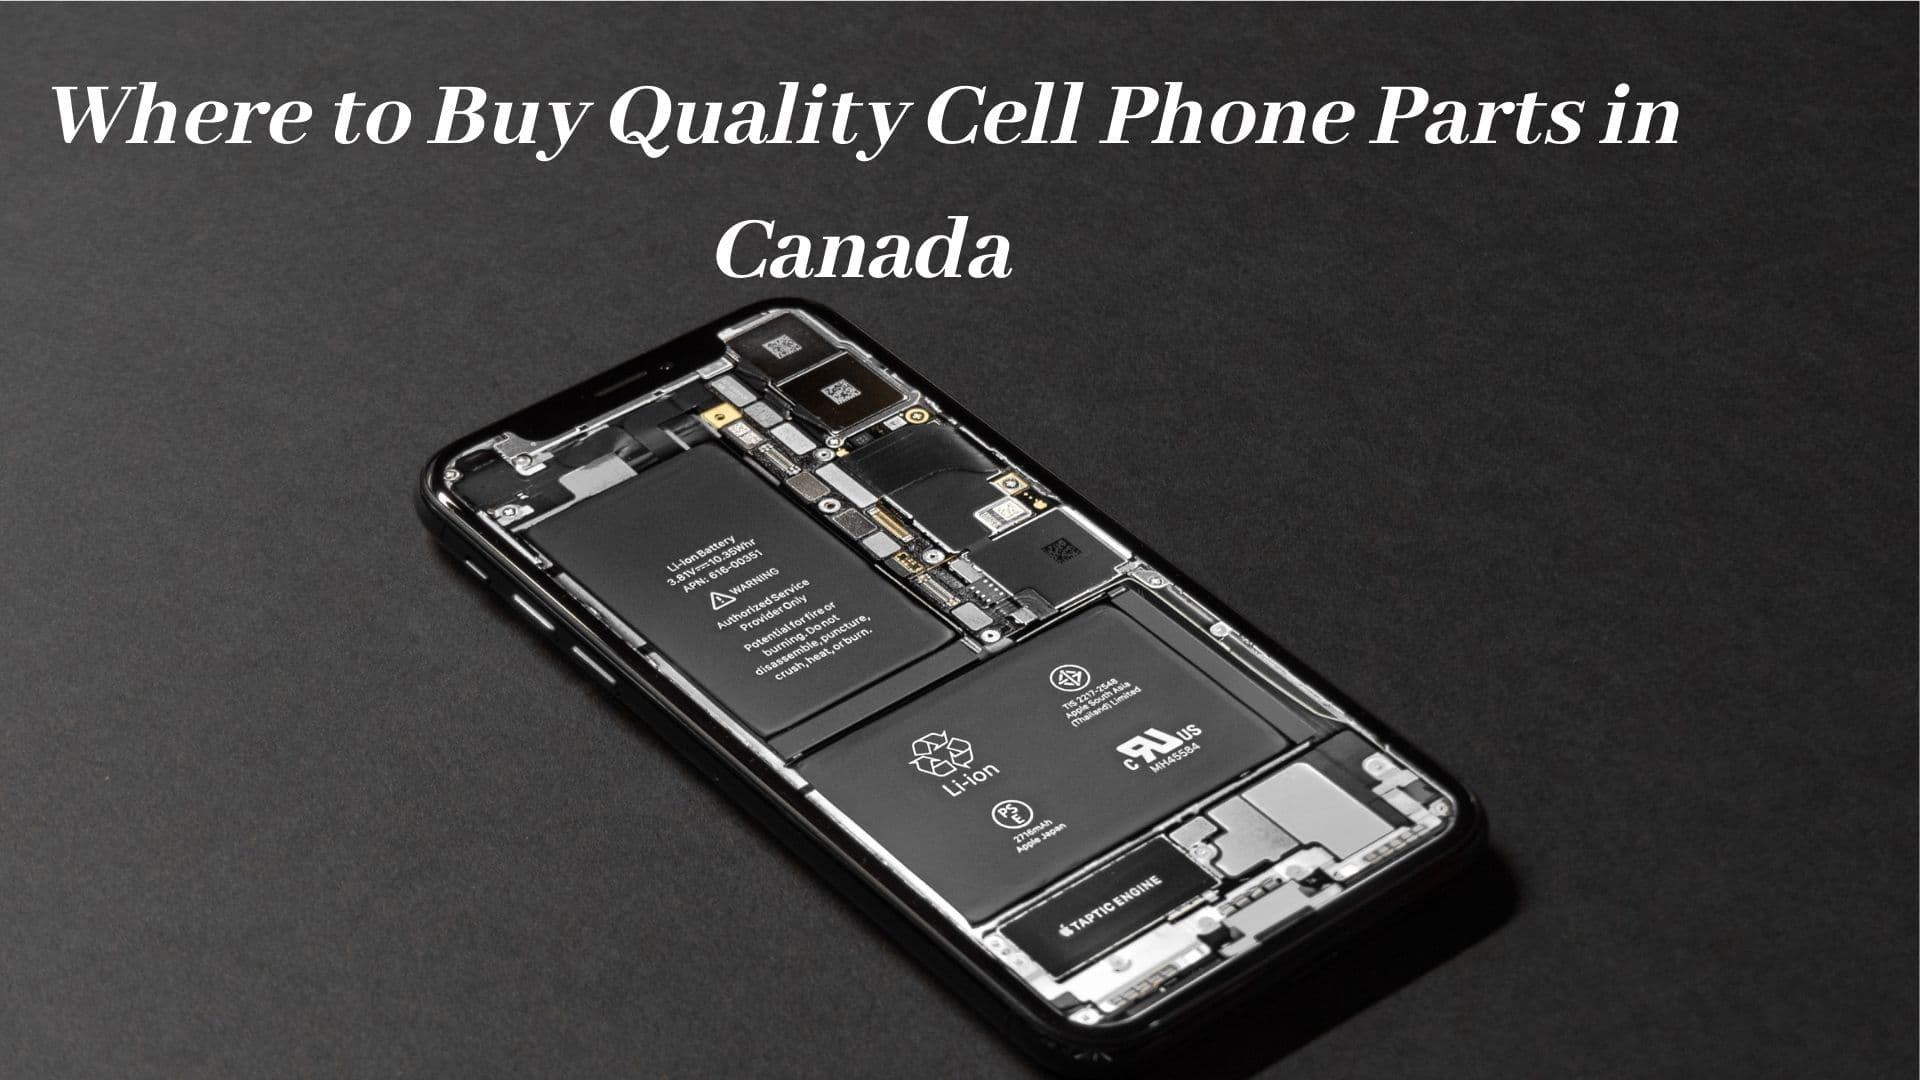 Where to Buy Quality Cell Phone Parts in Canada